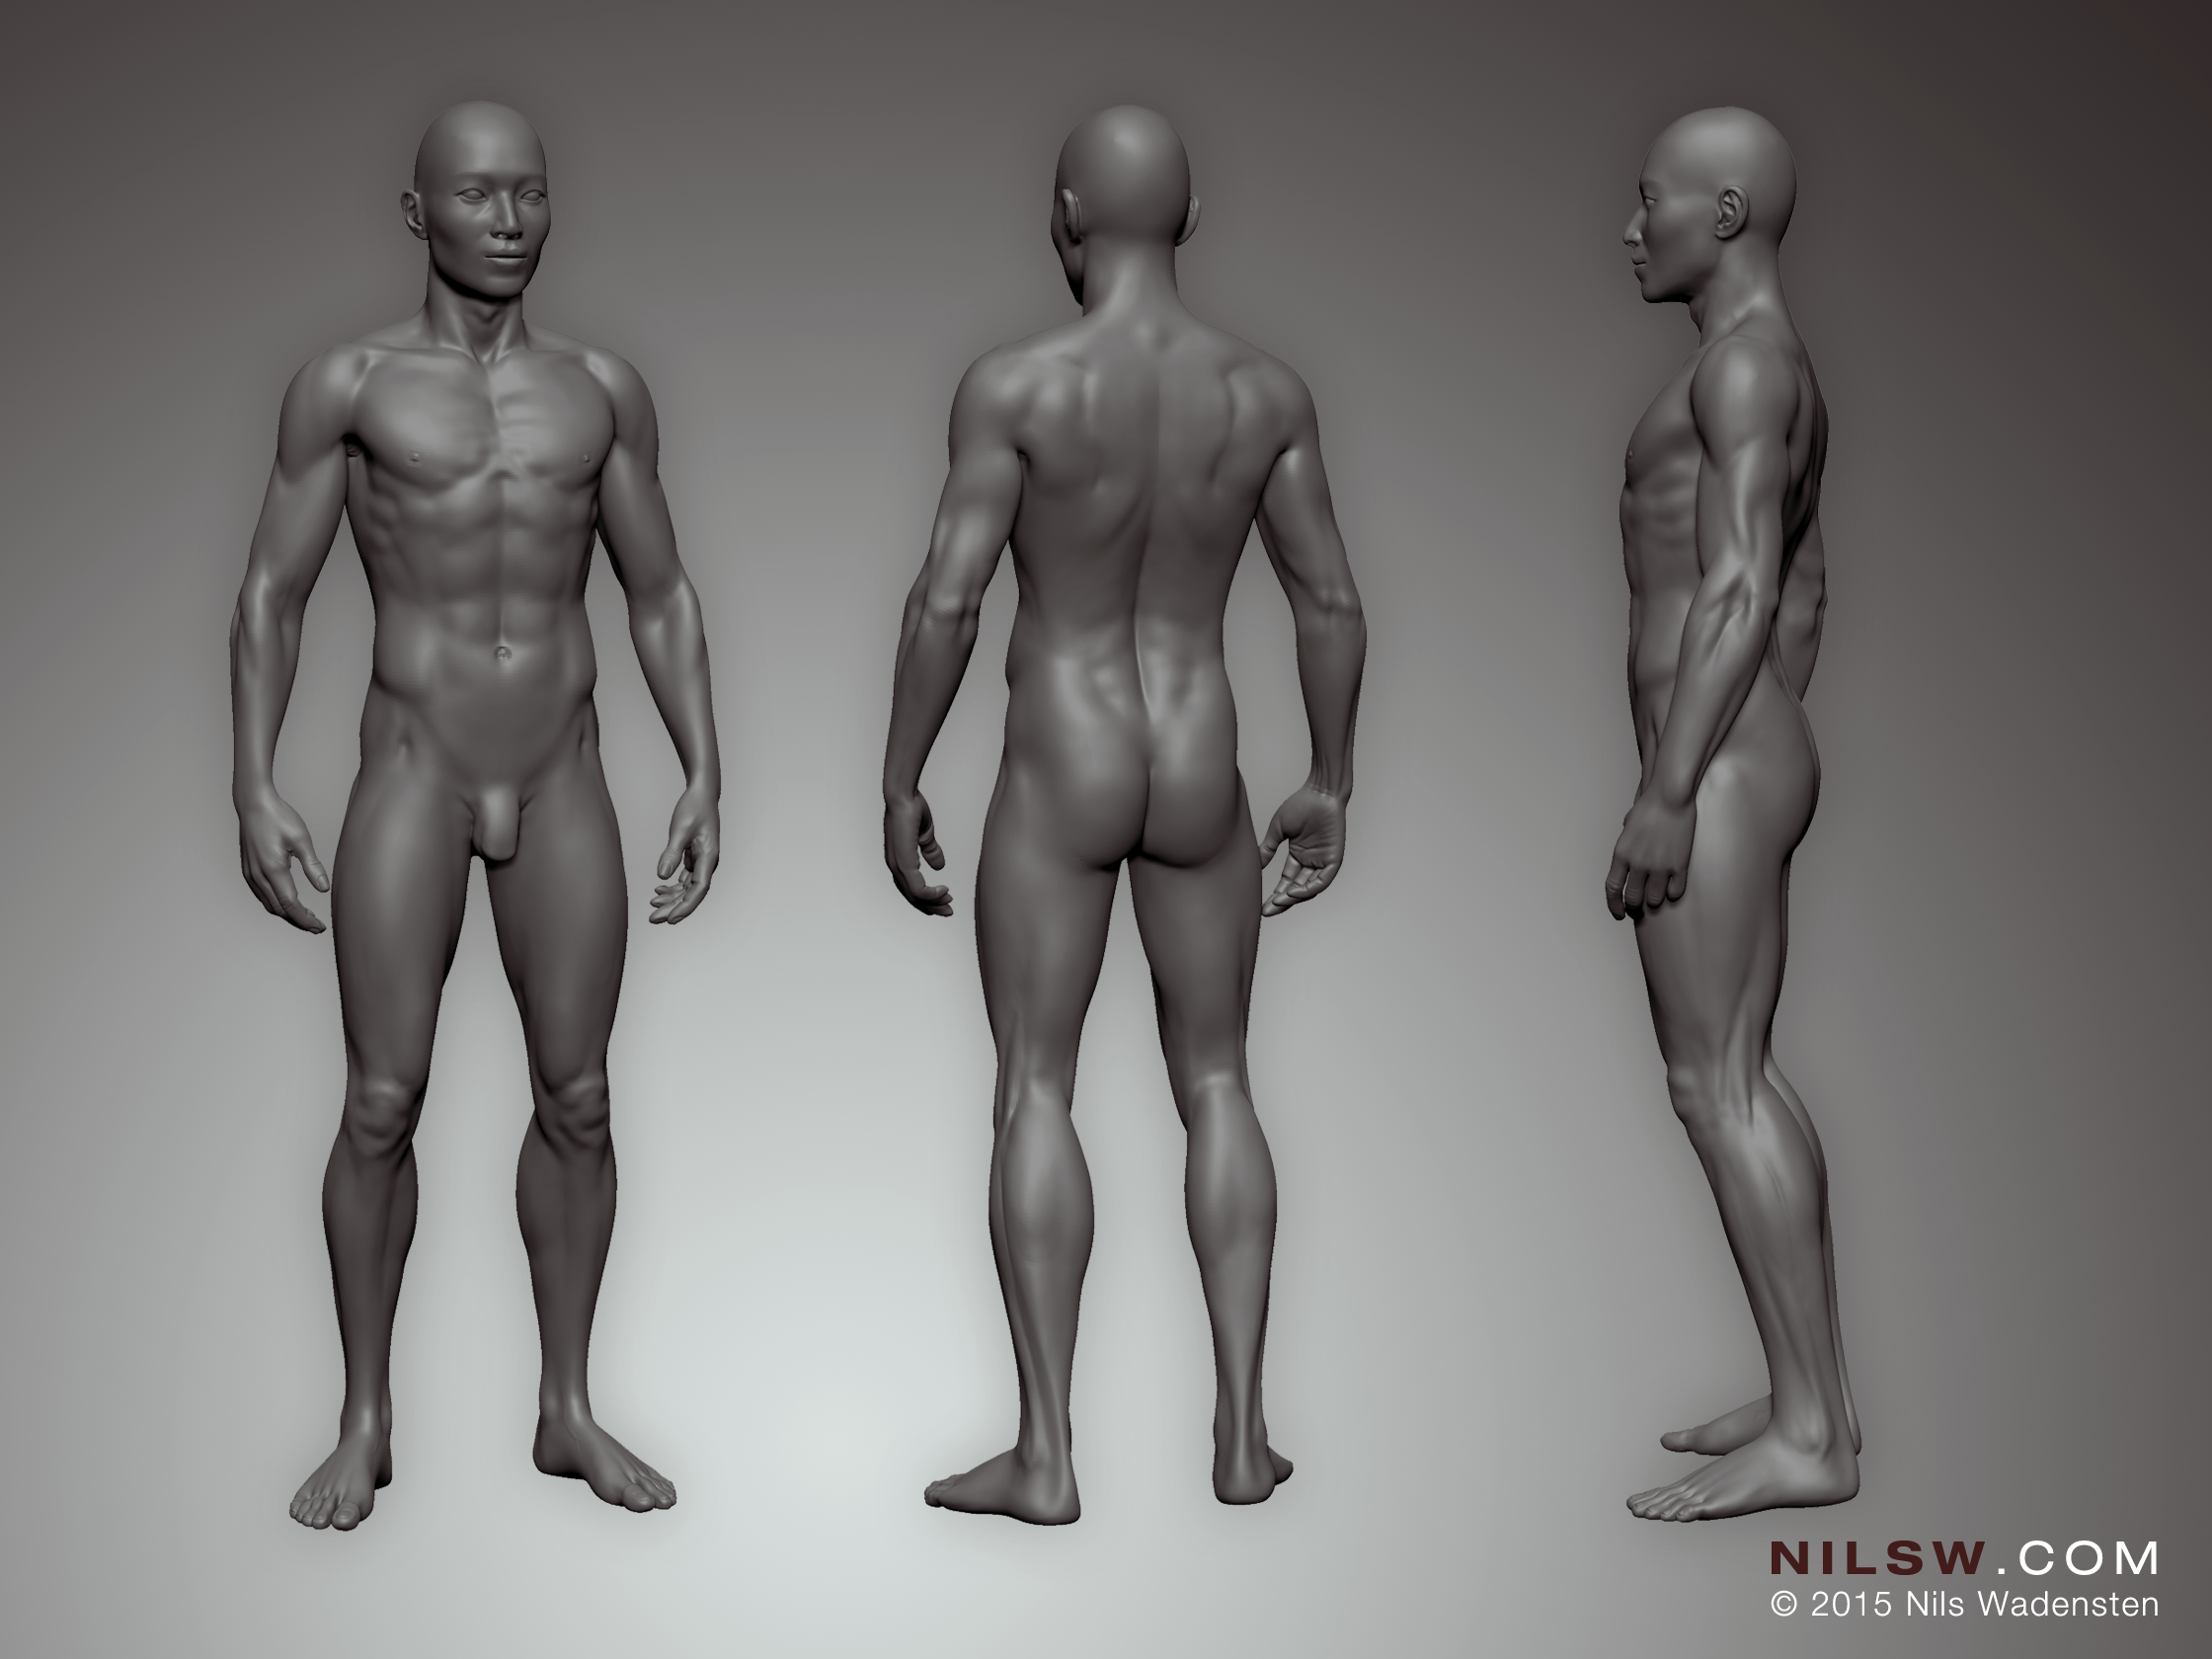 3D Bodysculpt by Nils Wadensten